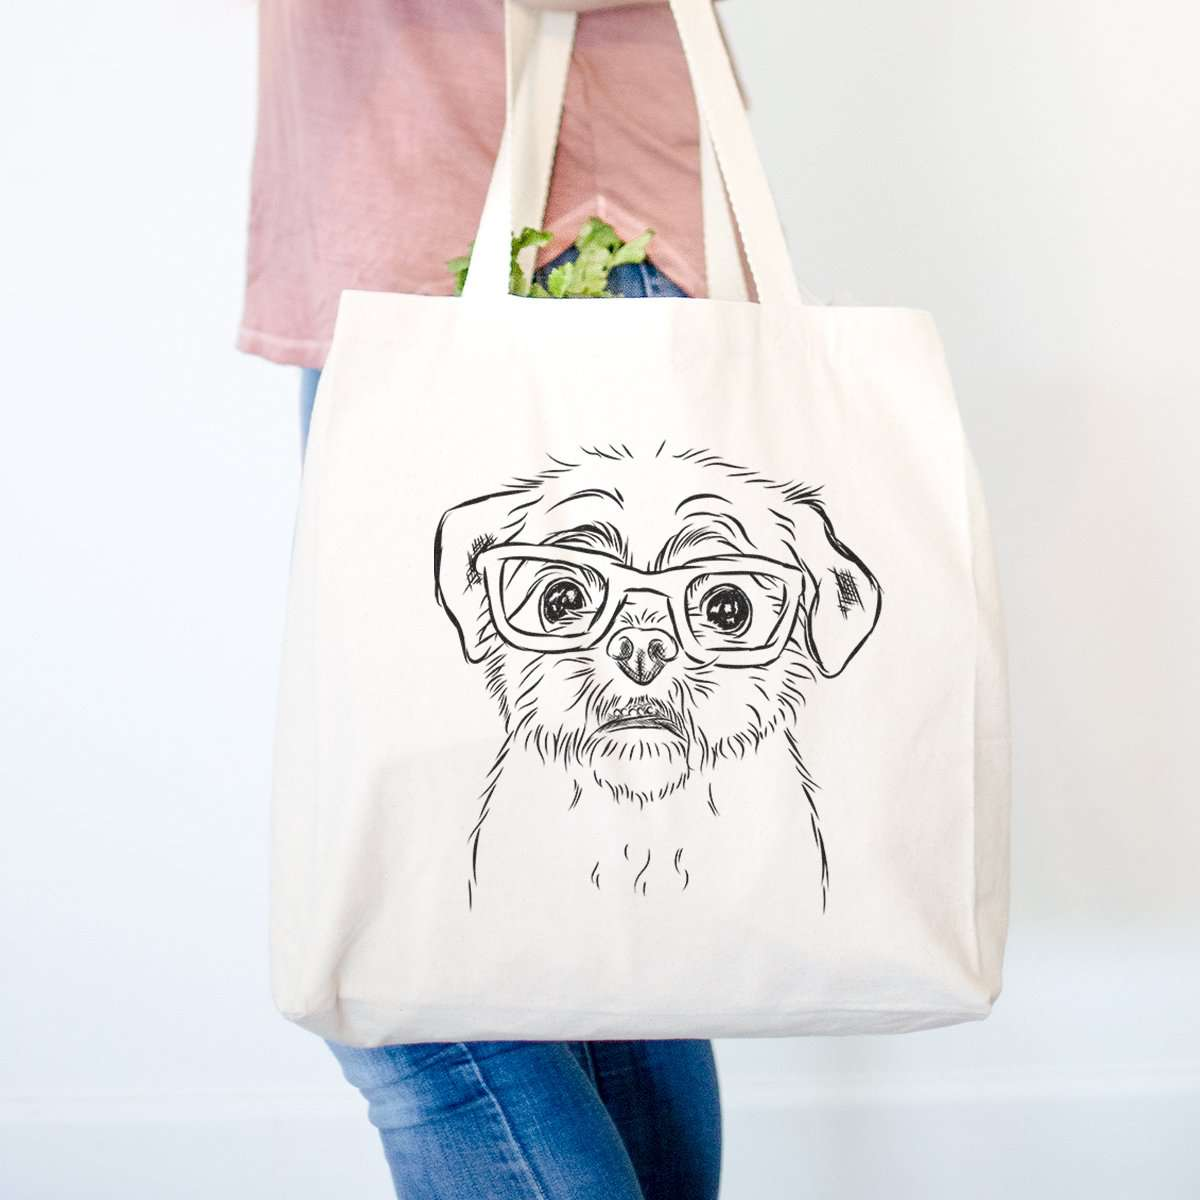 Smash the Shih Tzu - Tote